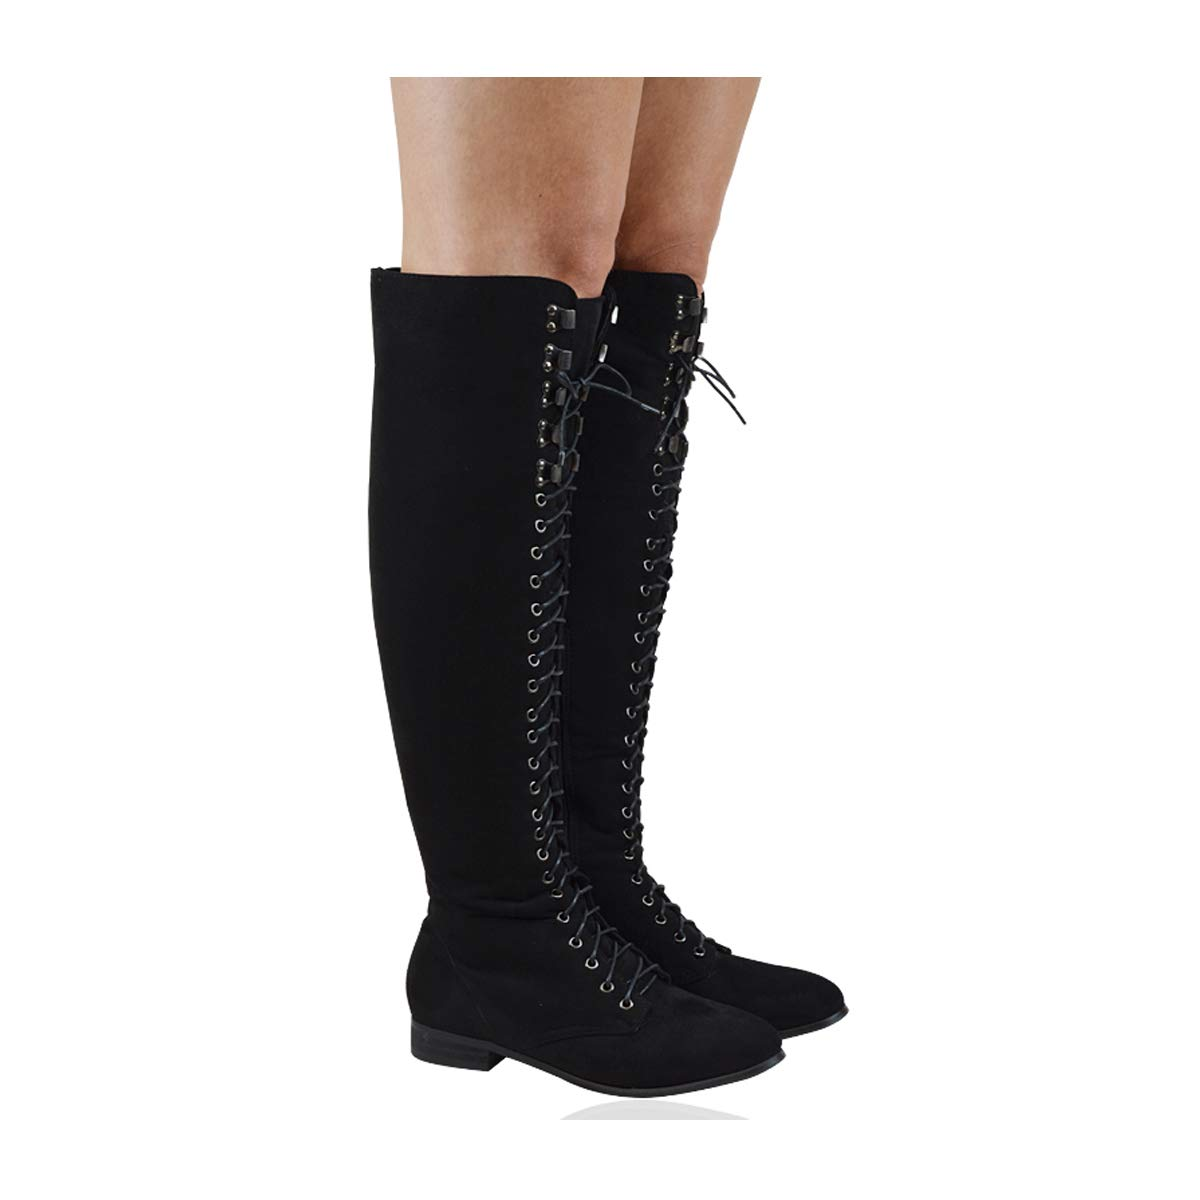 da7f4908ce89 ESSEX GLAM Womens Lace Up Over The Knee Boots Ladies Black Flat Heel Combat  Biker Riding Shoes Size 3-8  Amazon.co.uk  Shoes   Bags